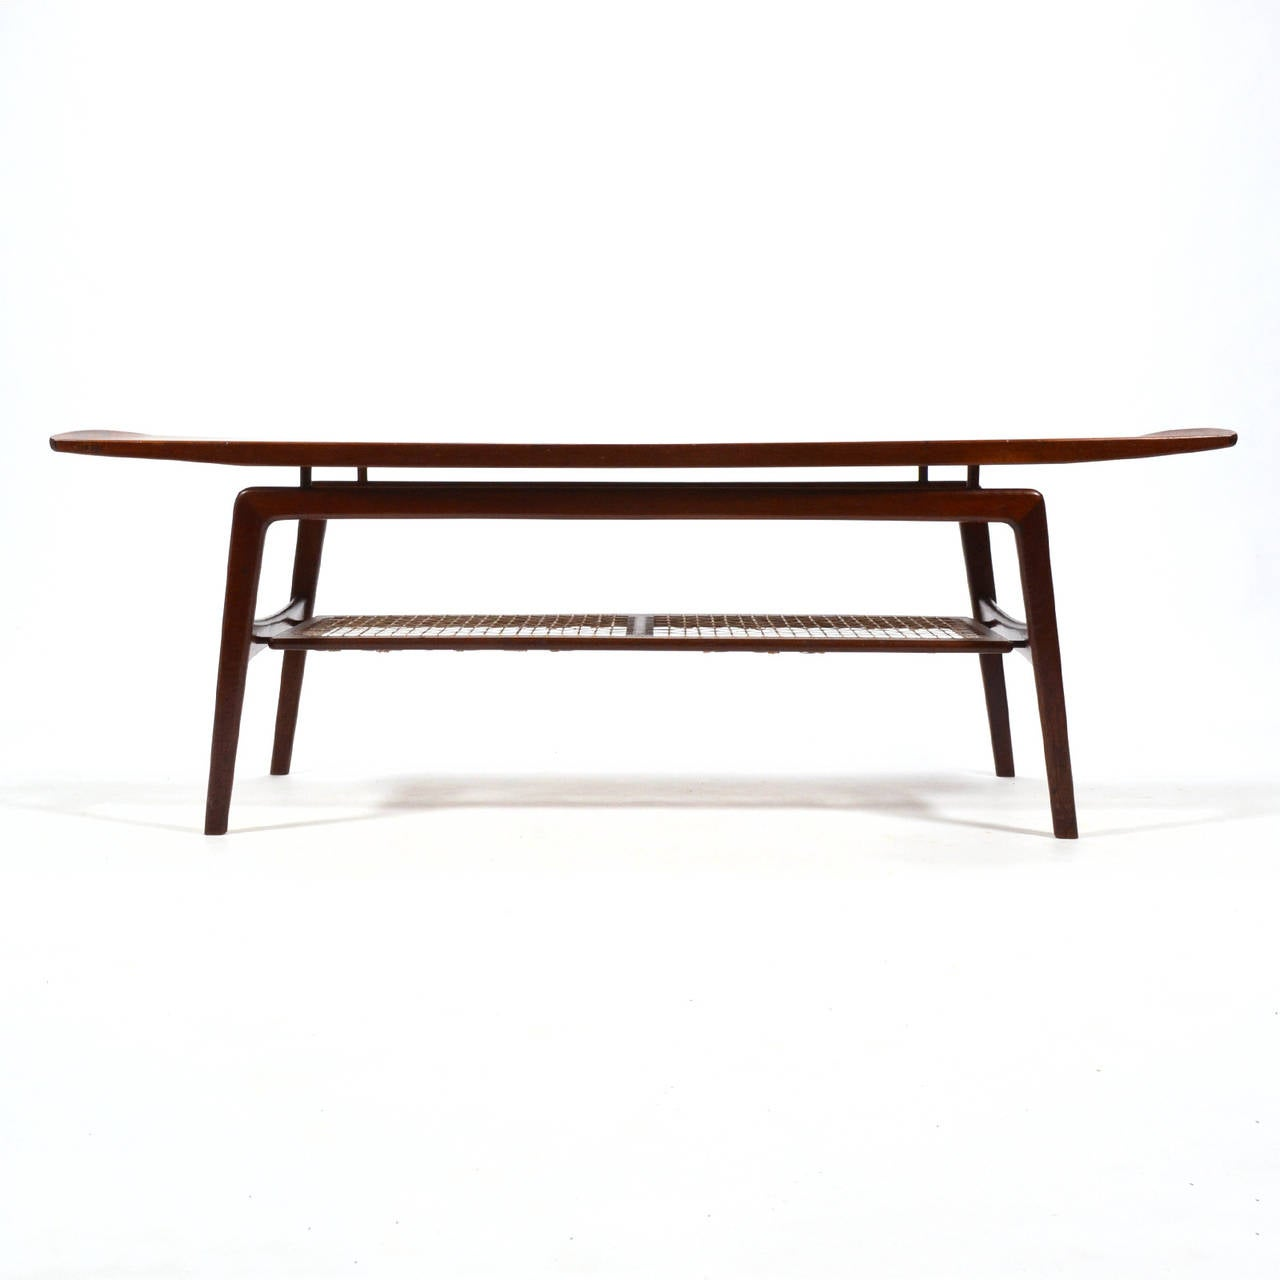 Scandinavian Modern Arne Hovmand-Olsen Coffee Table For Sale